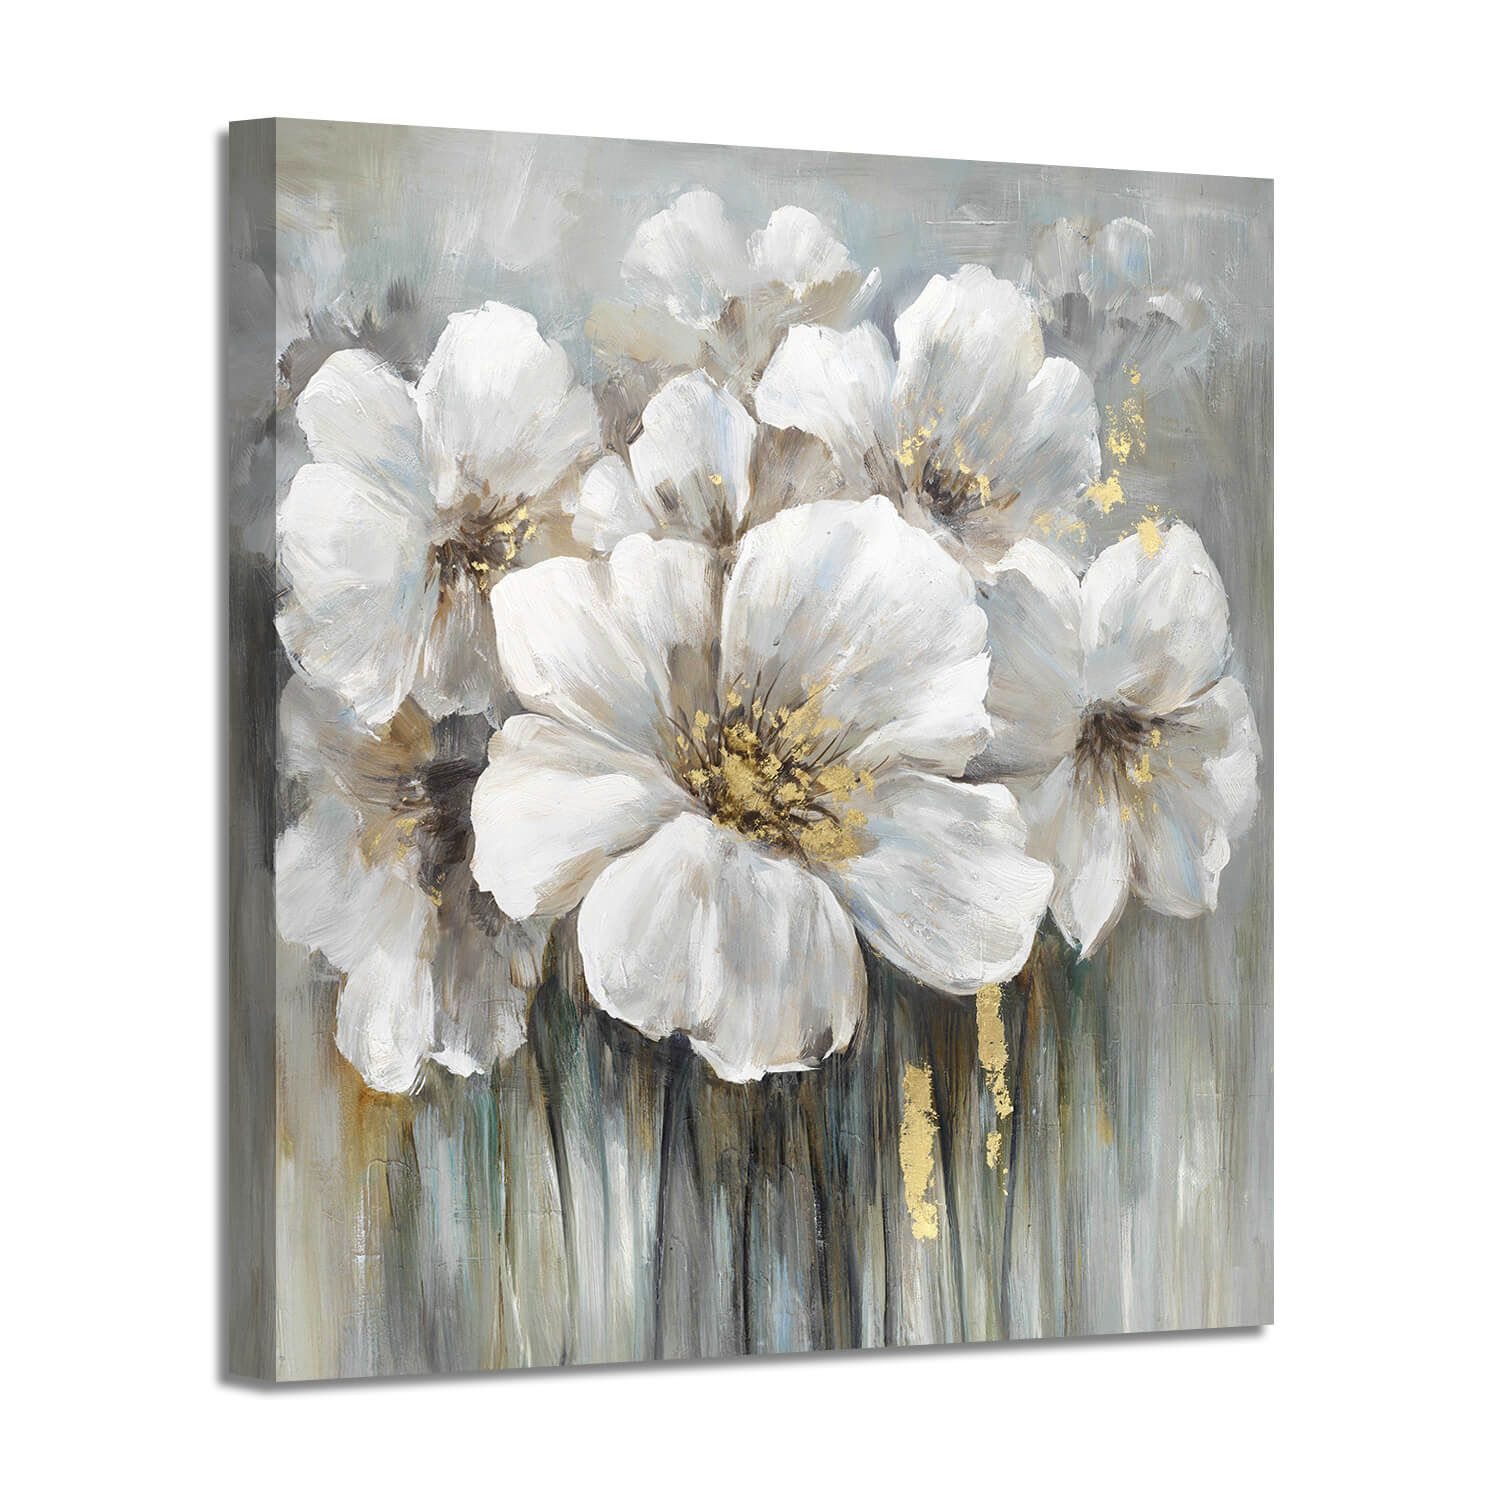 Abstract White Flower Wall Art Painting Picture On Canvas For Rooms Decor Flower Canvas Wall Art Flower Painting Canvas Flower Canvas